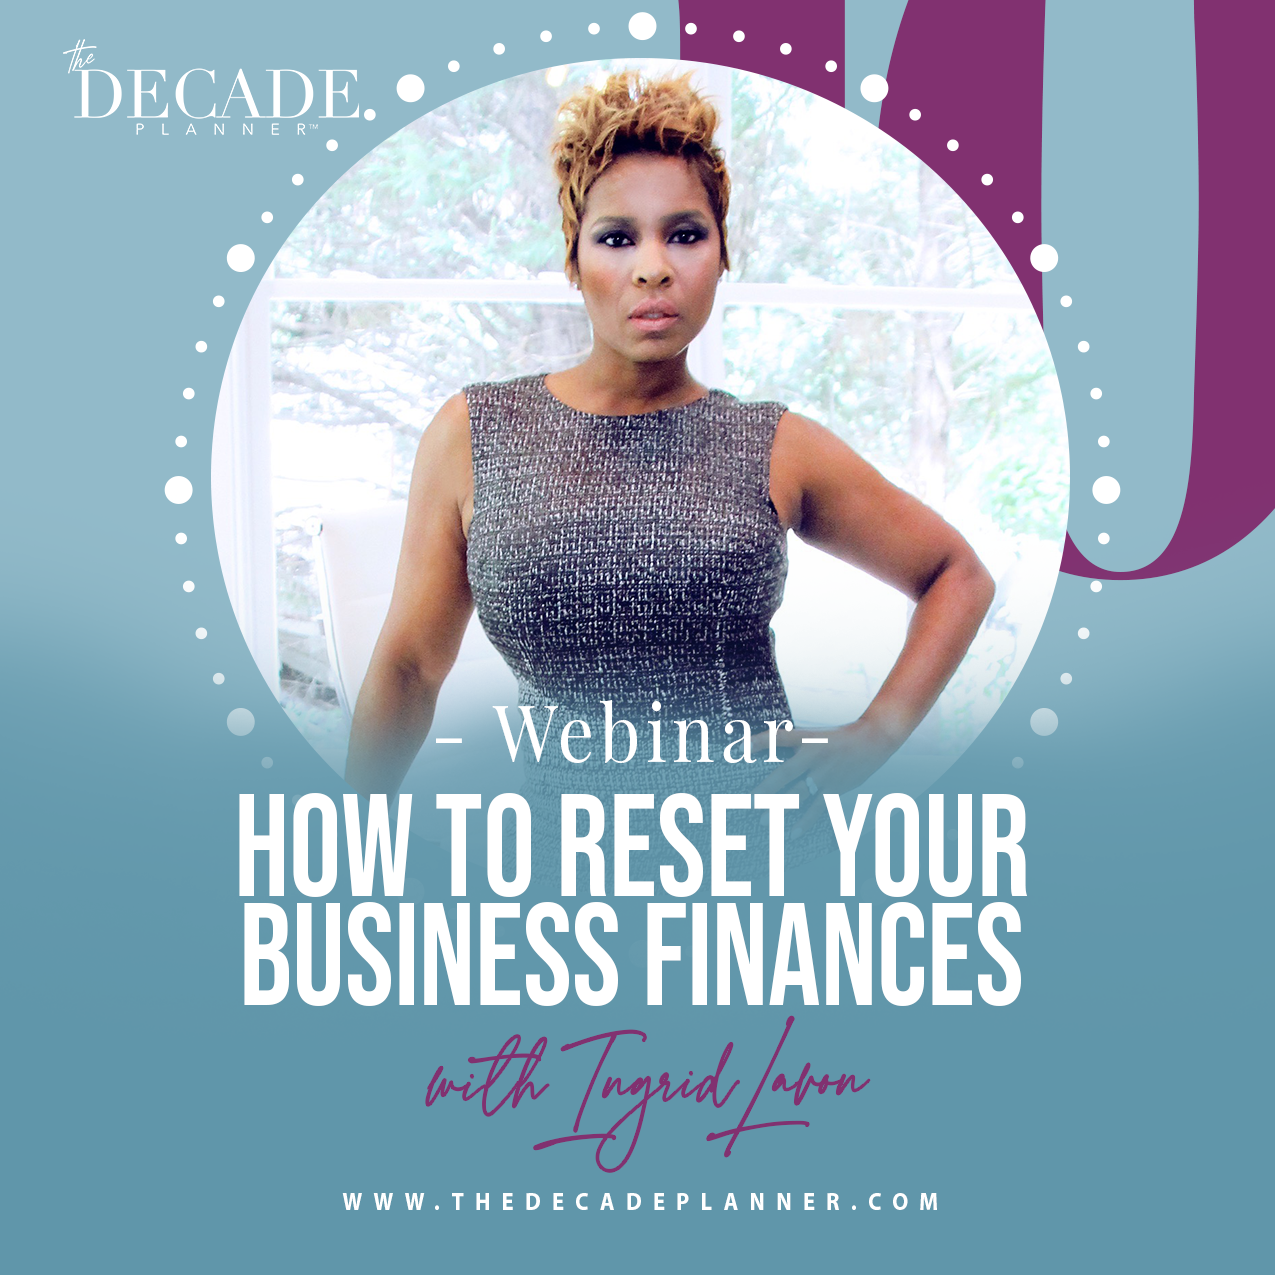 BUSINESS FINANCE 101: SET YOUR BUSINESS UP TO WIN WEBINAR